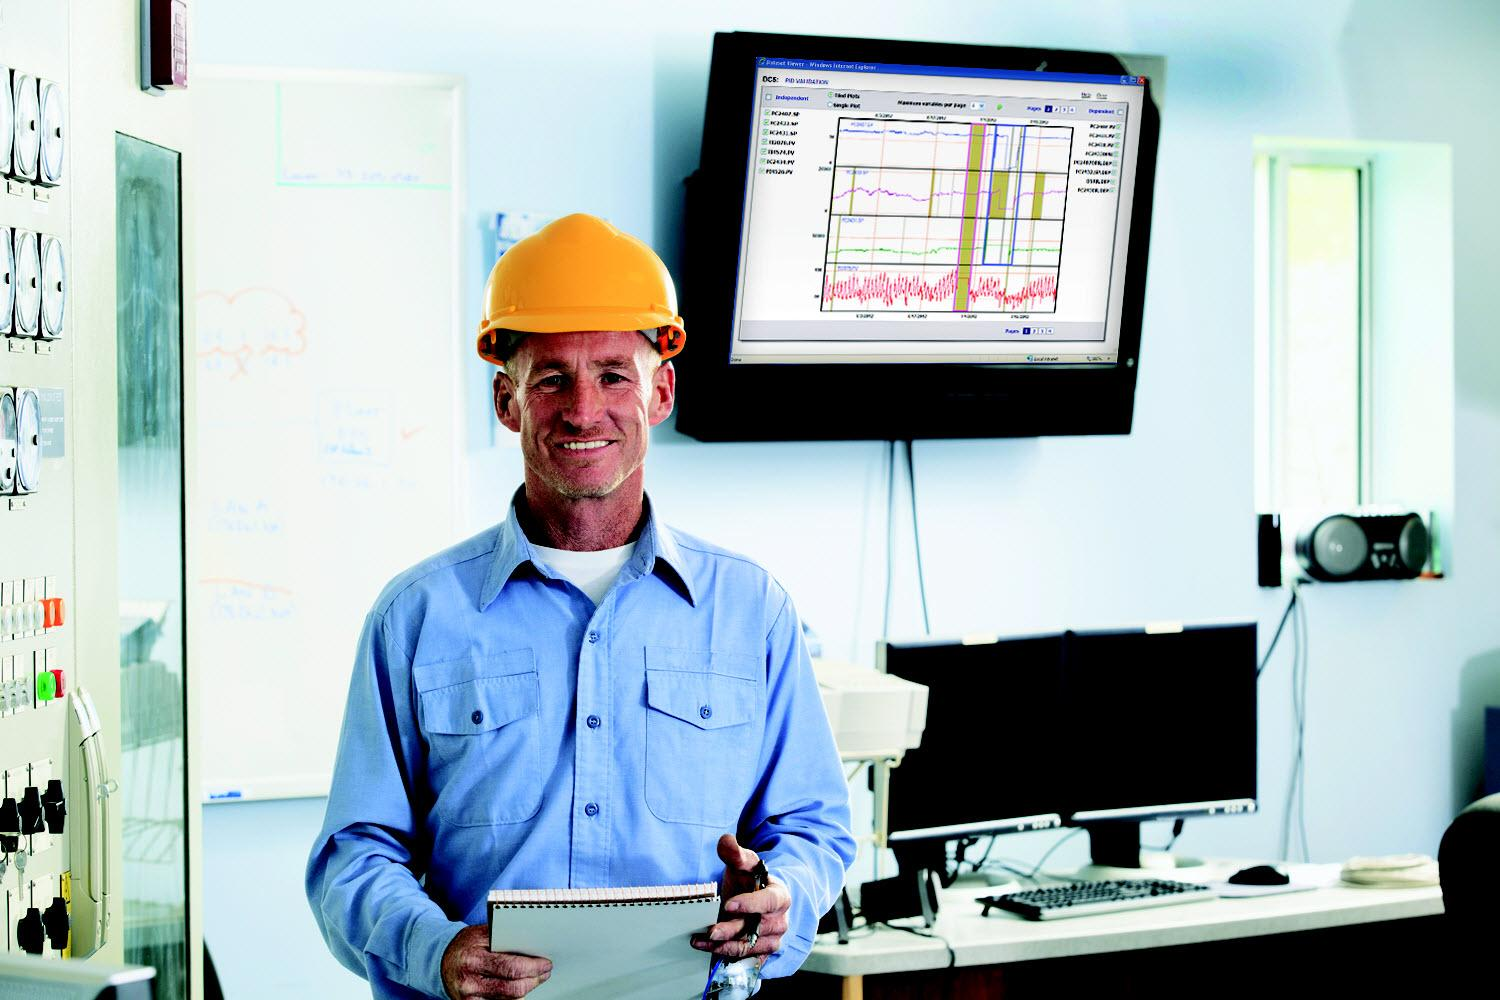 Advanced process control engineers engineers need to exert tighter control of operations in order to squeeze out more production at lower cost from complex and demanding processes